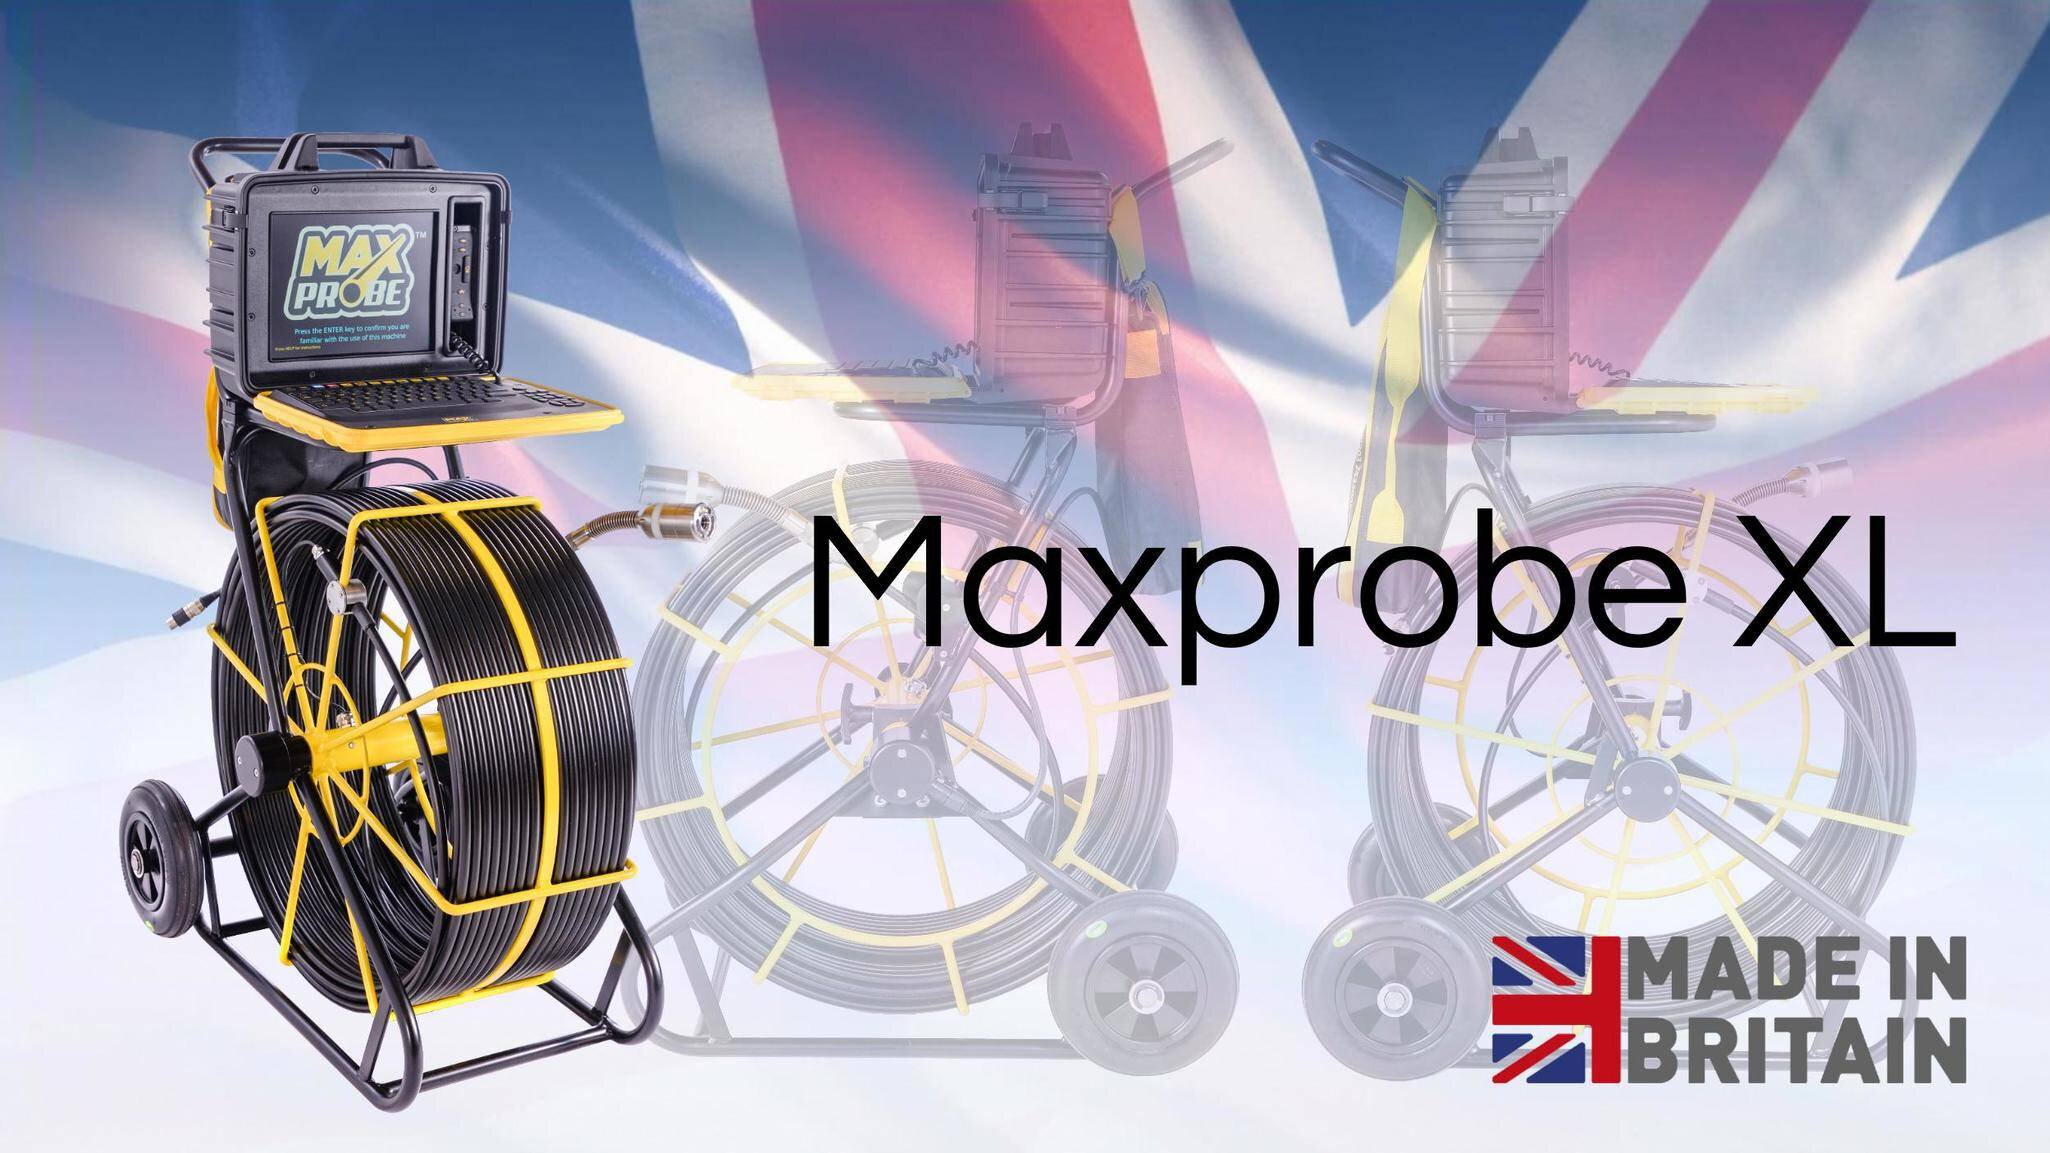 Gallery image 1 - The Maxprobe XL: * 100 metres * Built-in survey reporting software   - create PDF reports on site   - no subscription required * Self-levelling camera * Manufactured in the UK  See more here: https://www.scanprobe.com/product/maxprobe-xl/